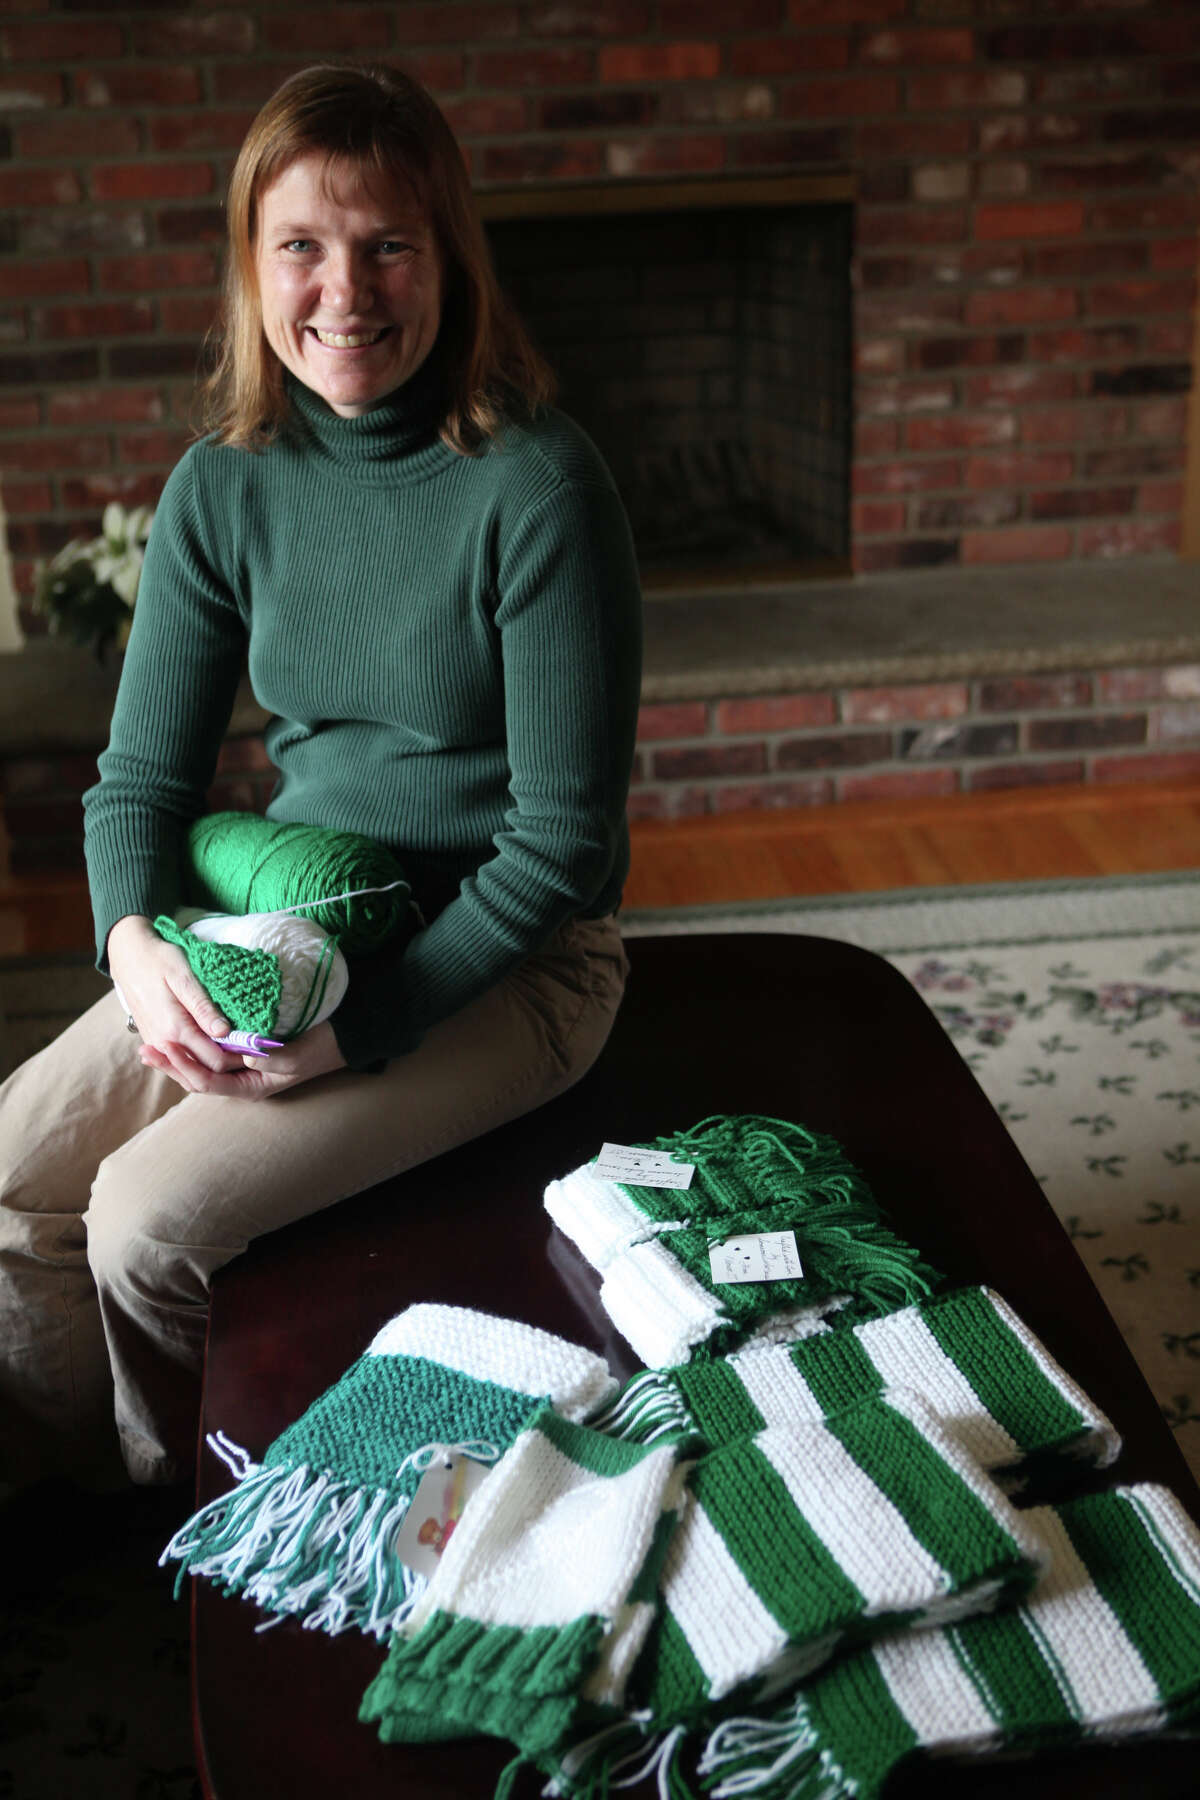 Jeanne Malgiogo, a Trumbull school teacher, sits in her Monroe, Conn. home with scarves that she and others have knitted for the children of Sandy Hook on Monday, December 24 2012. Knitters from all over have joined to help.